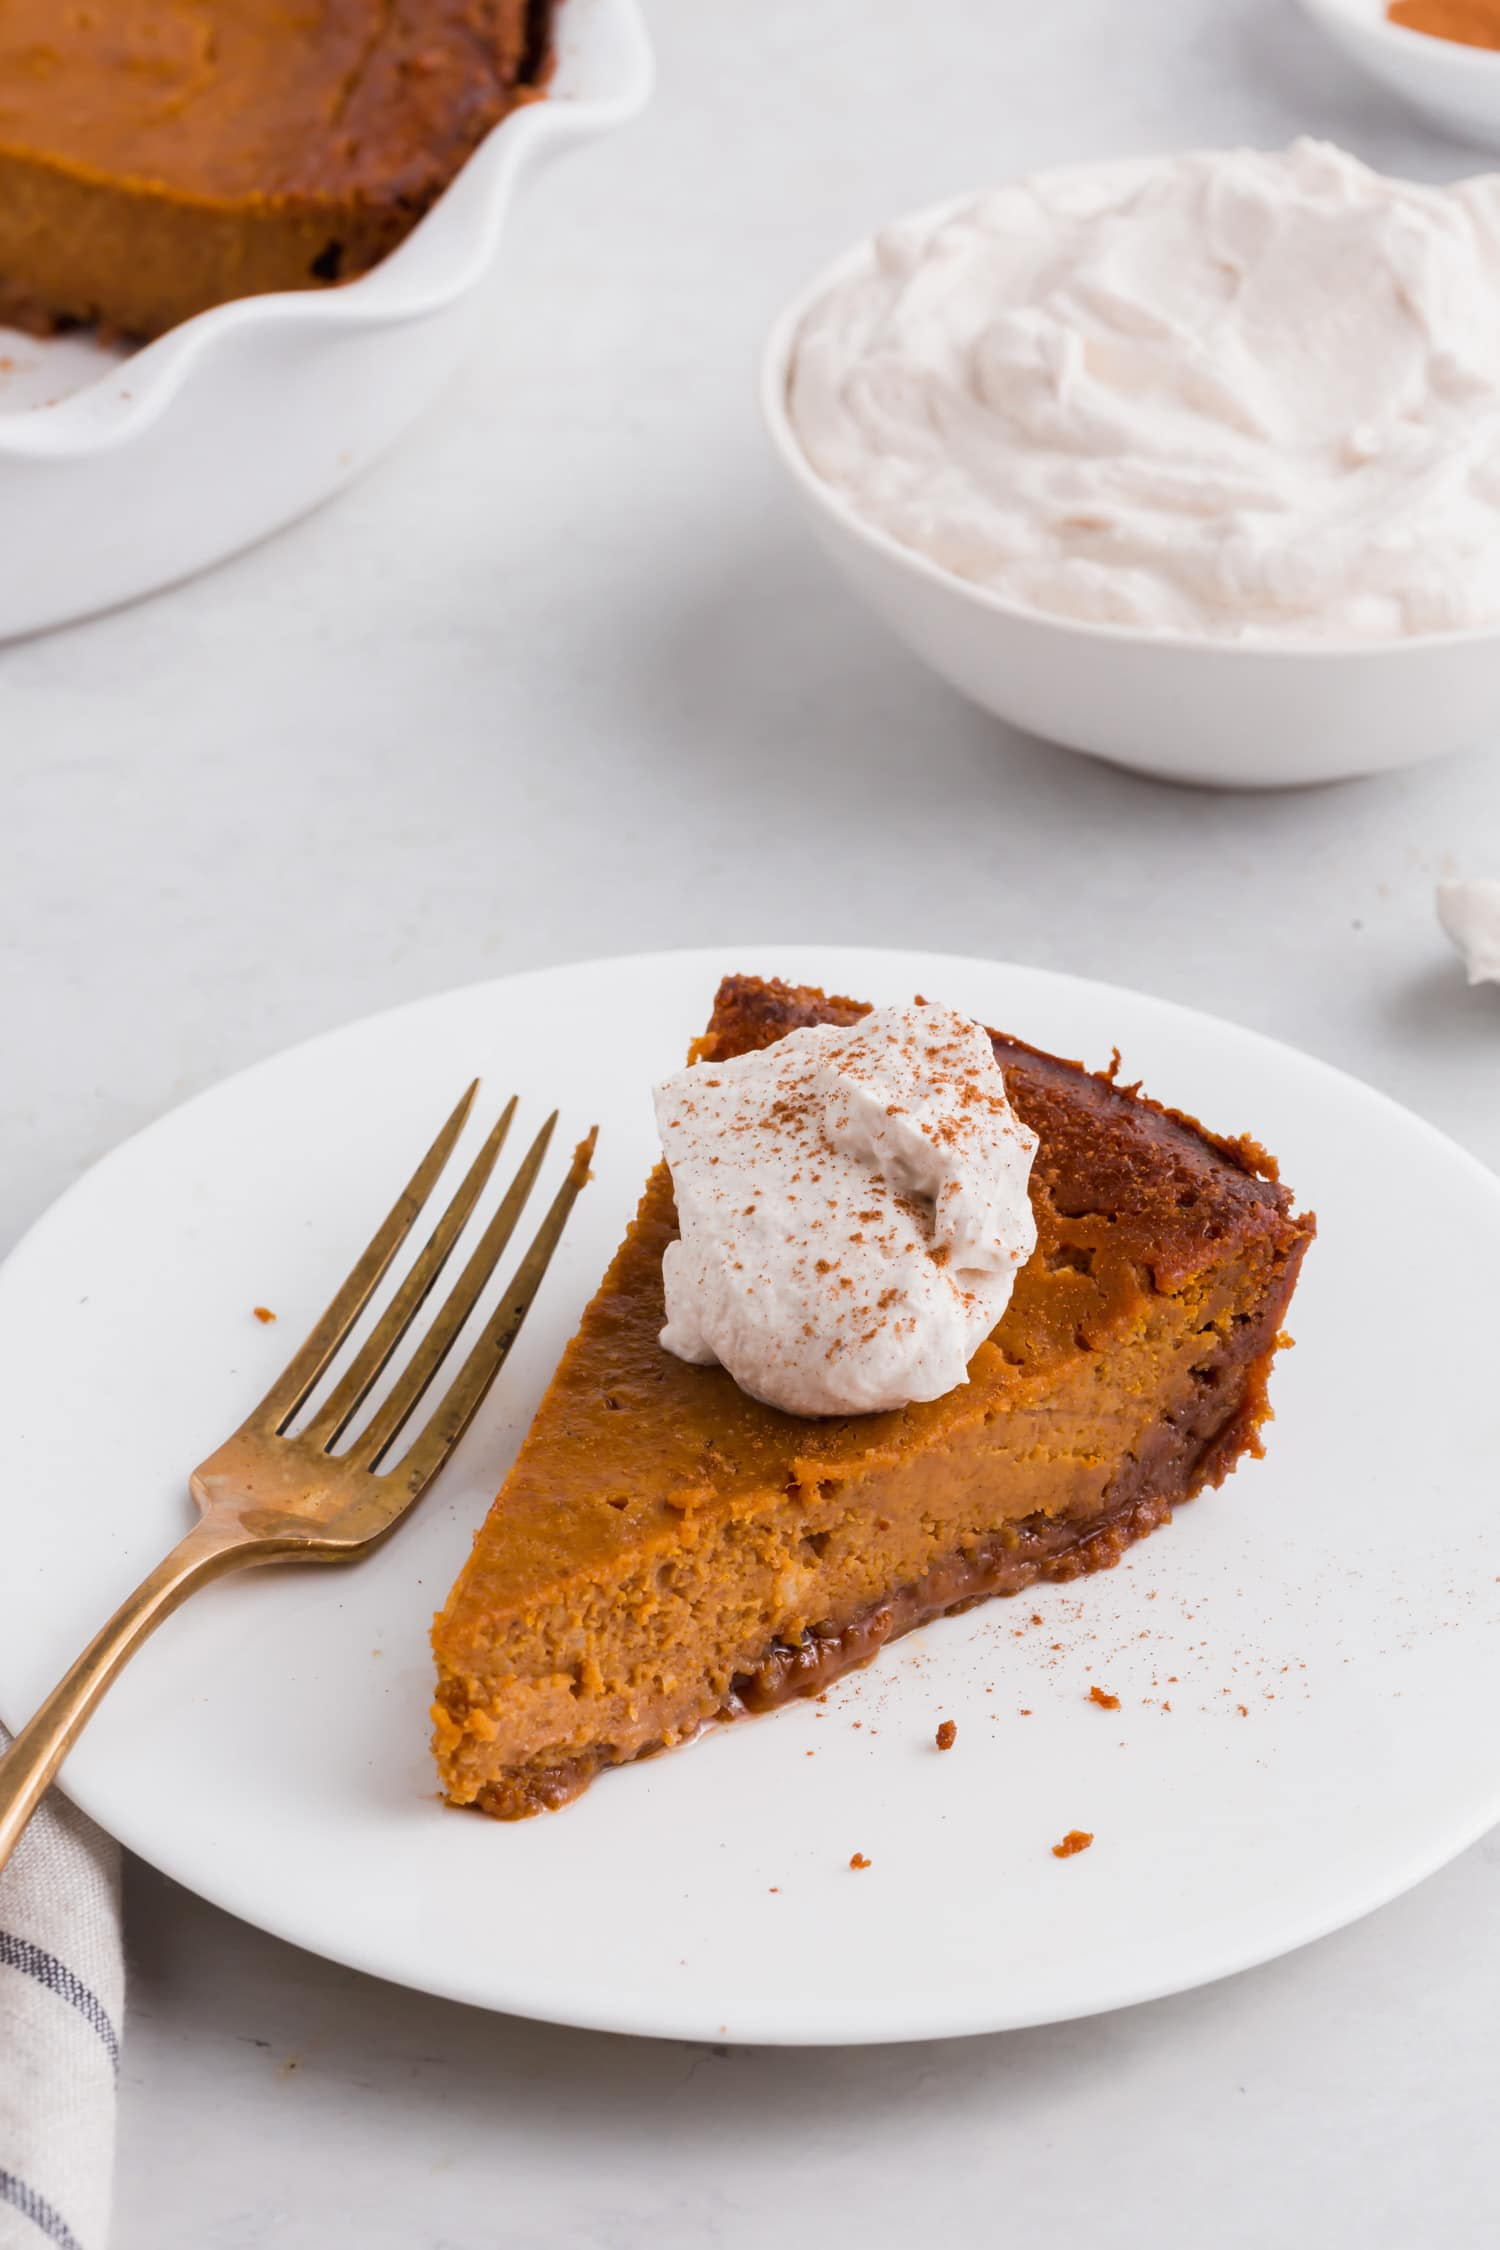 A photo of a piece of gluten-free pumpkin pie on a plate with a fork and a bowl of whipped cream in the background.